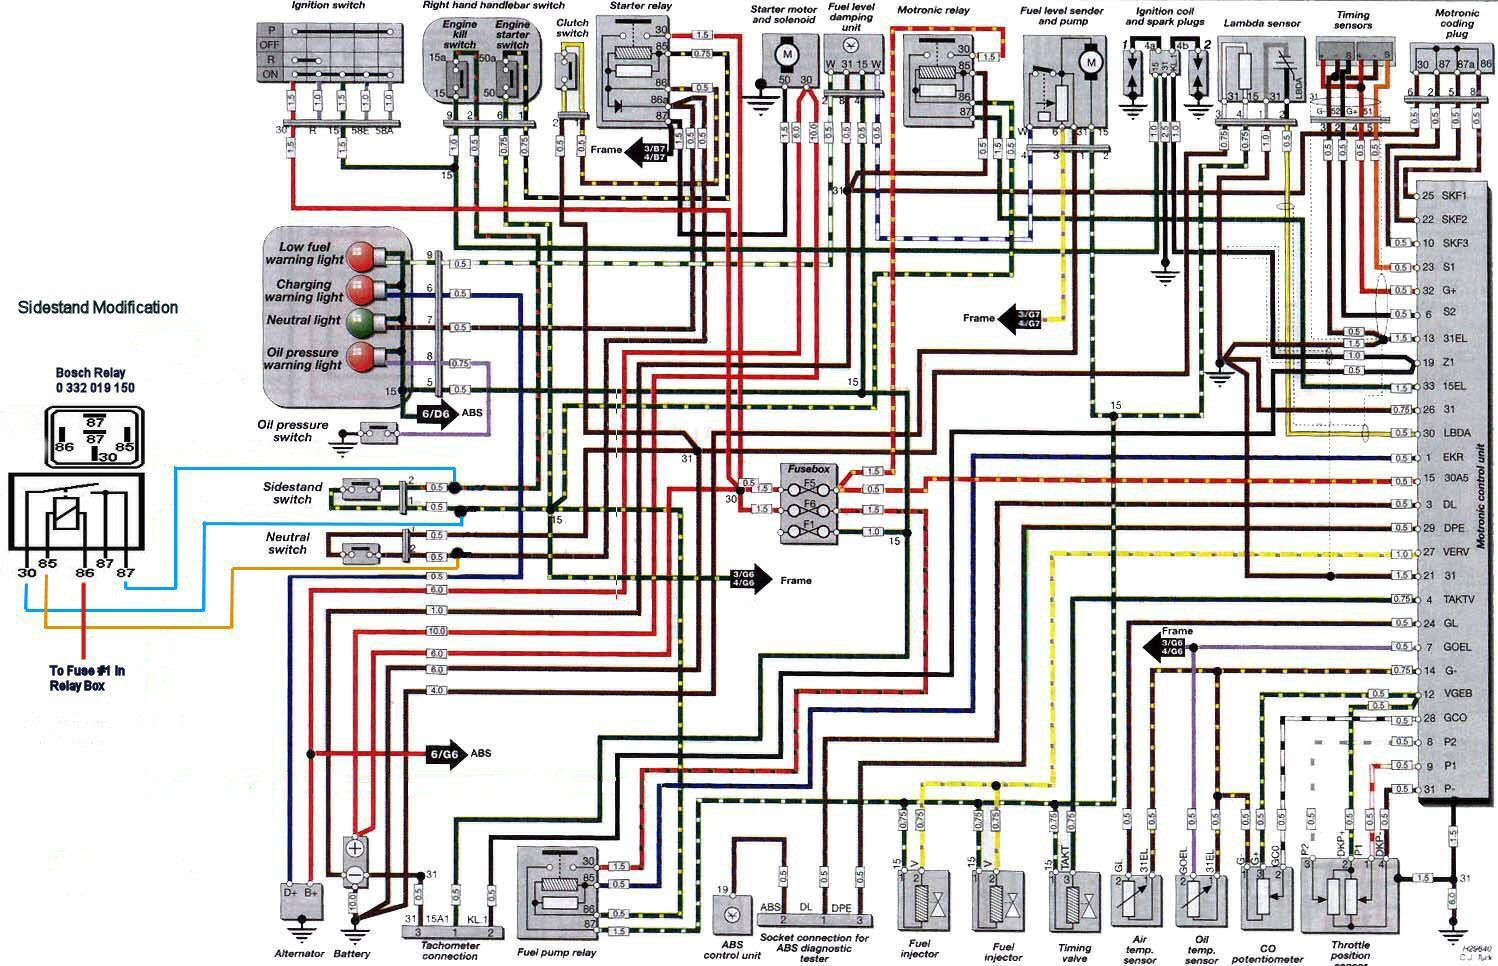 cfa26548fff674929dbaca6a9b06c2b3 bmw r1150r electrical wiring diagram 1 bmv pinterest bmw r100rs gauge wiring diagram at sewacar.co